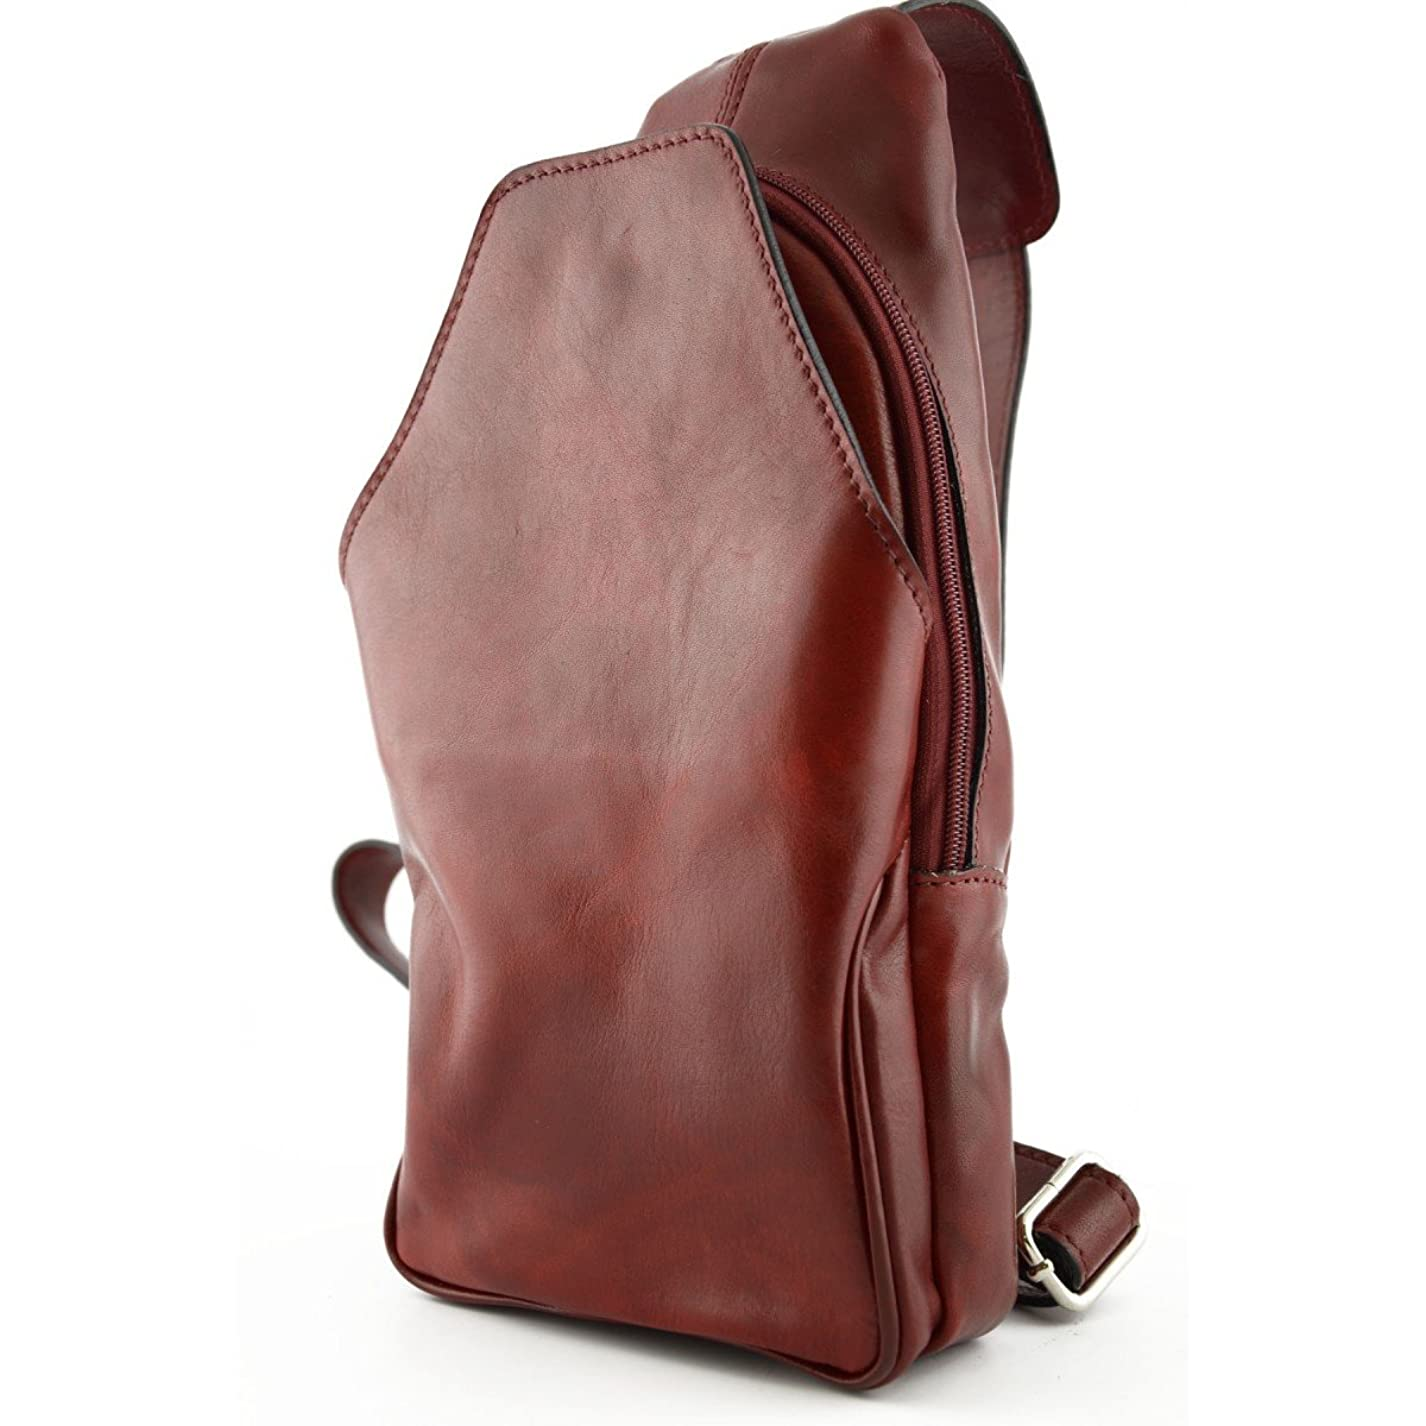 統治する曖昧な必要条件Made In Italy Genuine Leather Mono-Shoulder Backpack With Front Pocket Color Red - Backpack